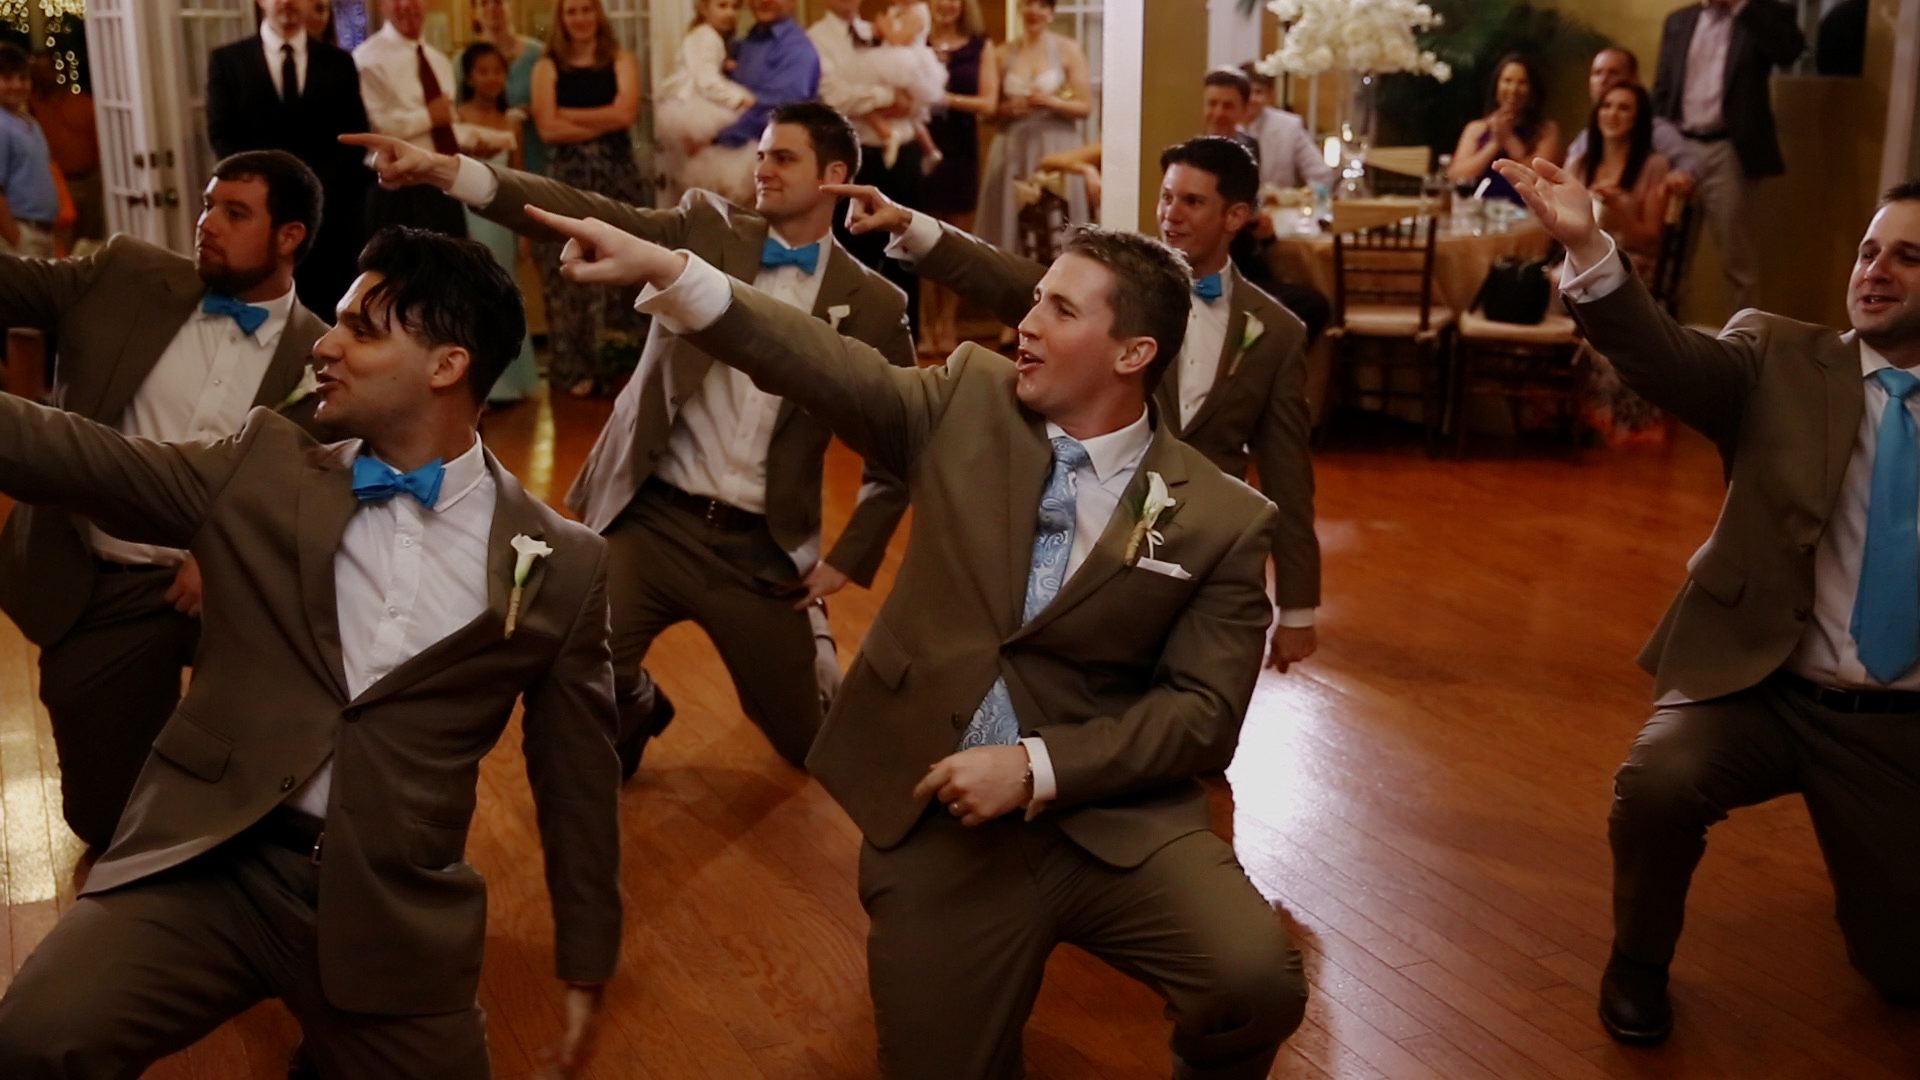 The entire bridal party memorized a hilarious choreographed dance!